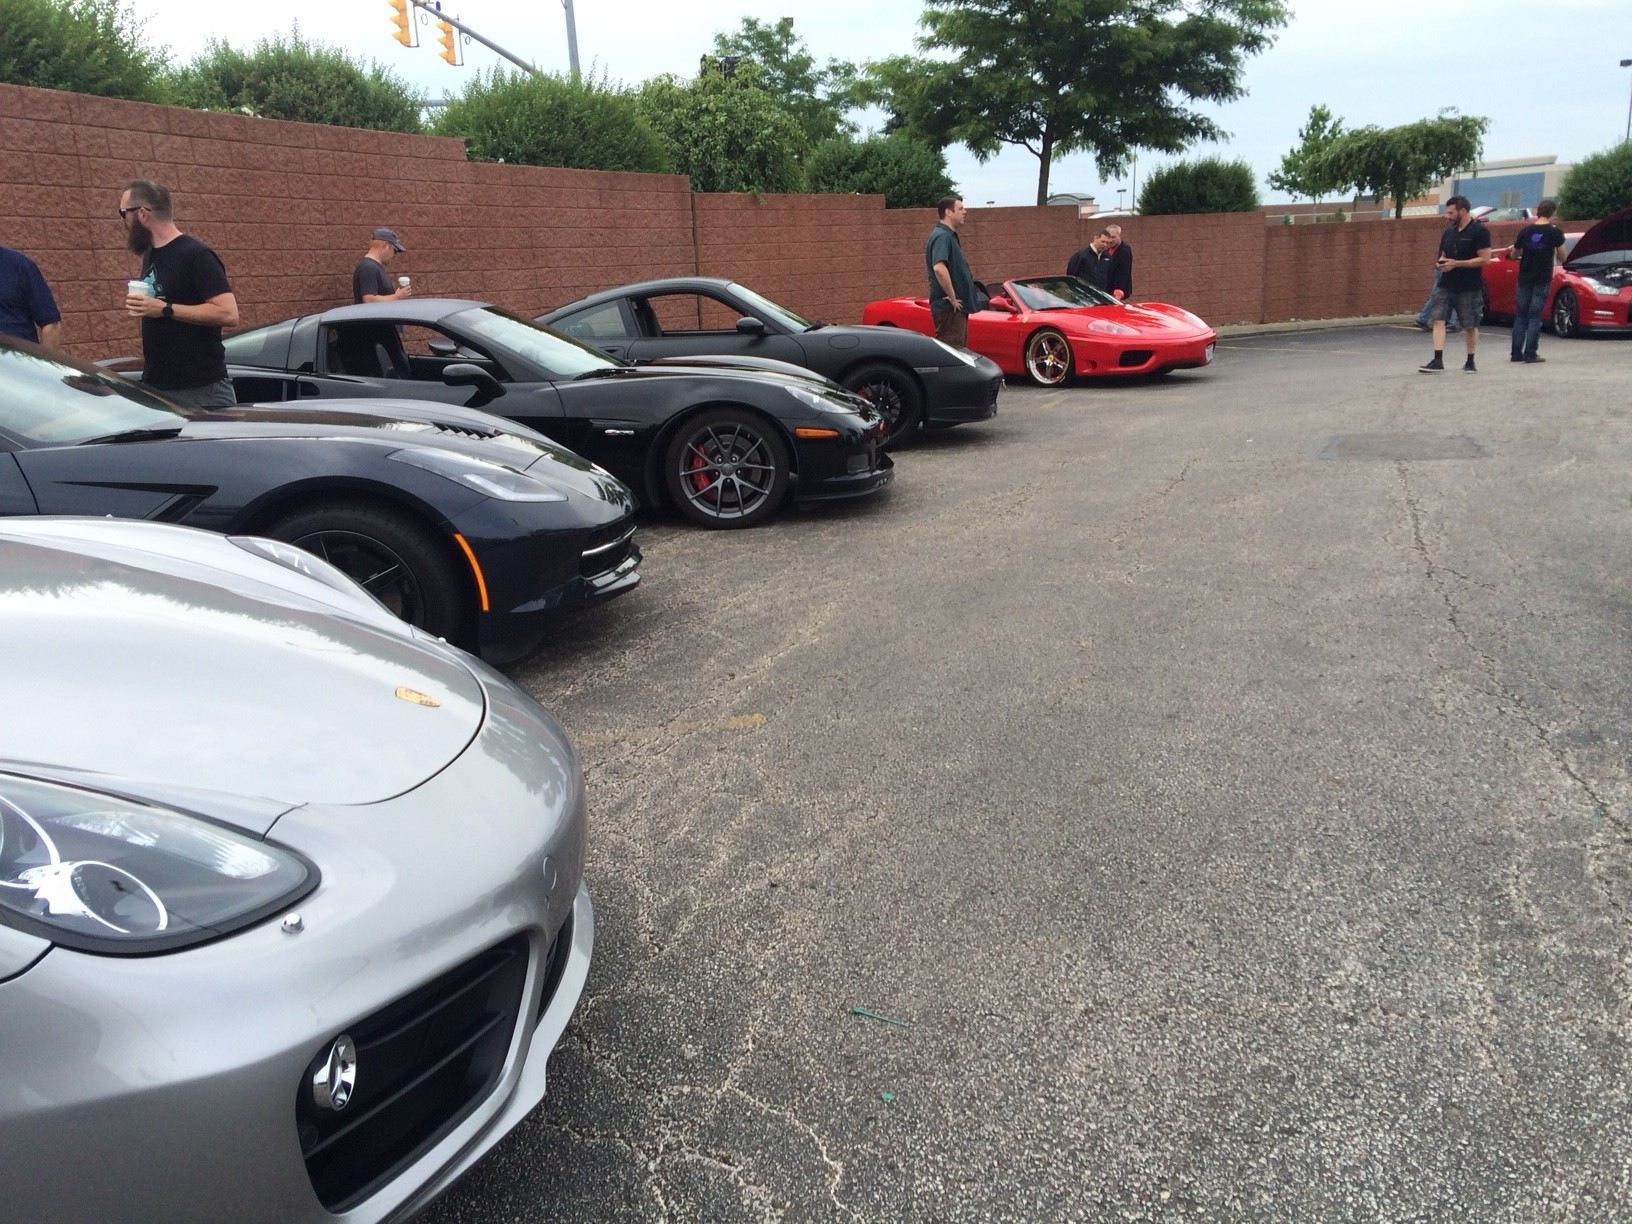 Porsches, Corvette's and a Ferrari